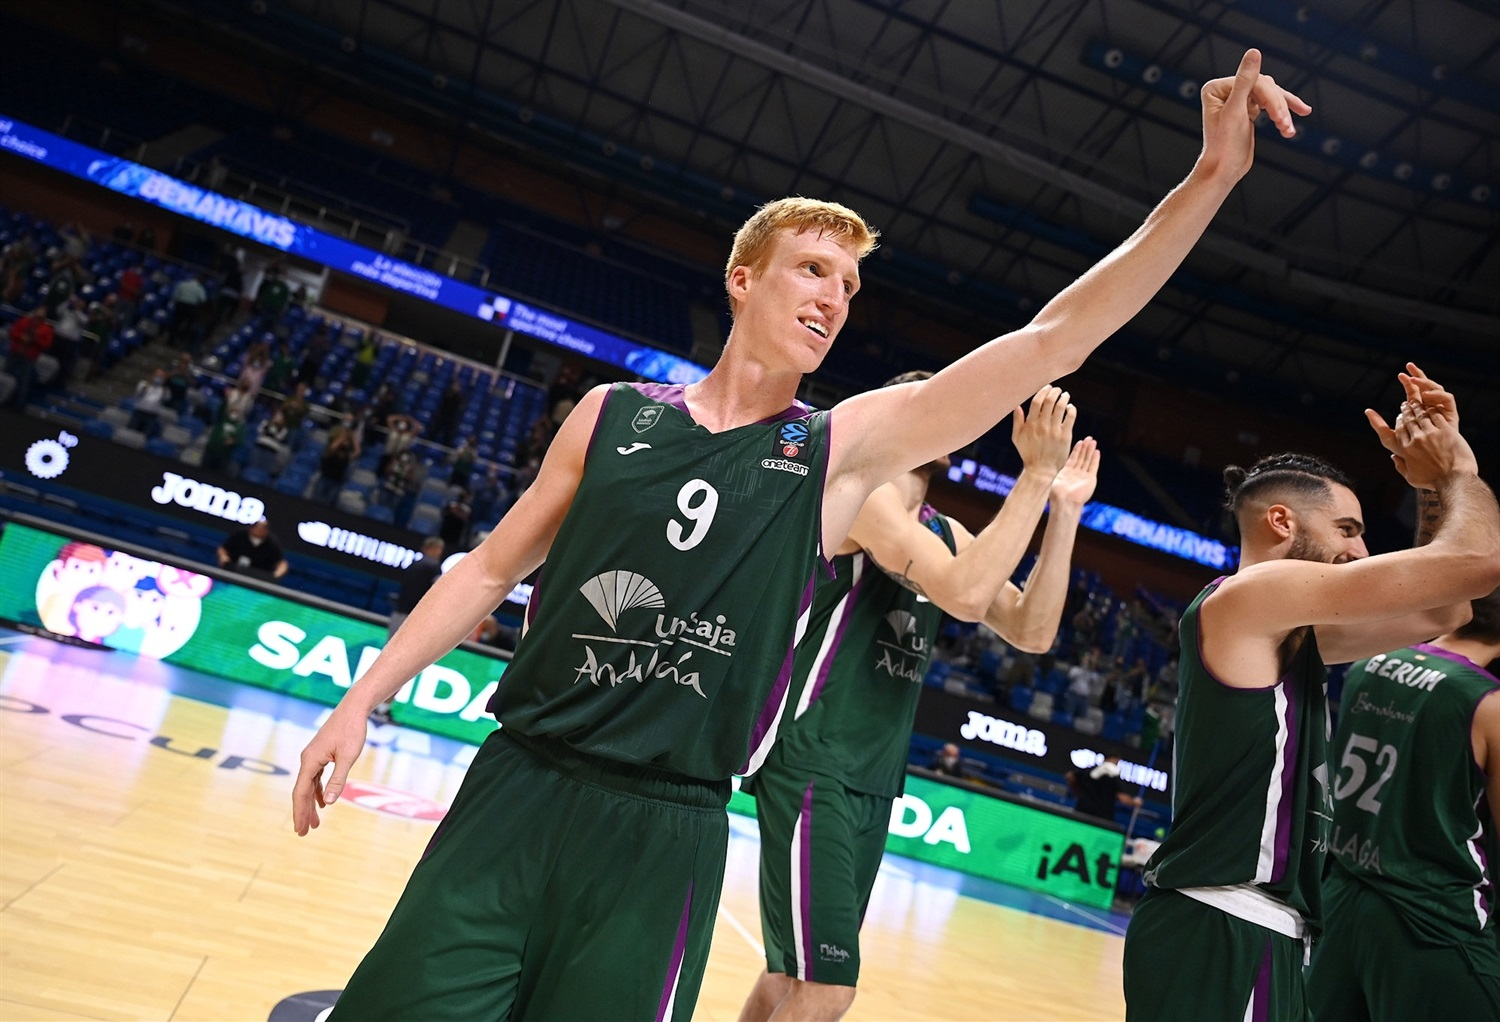 Alberto Diaz celebrates - Unicaja Malaga (photo Unicaja - M. Pozo) - EC20